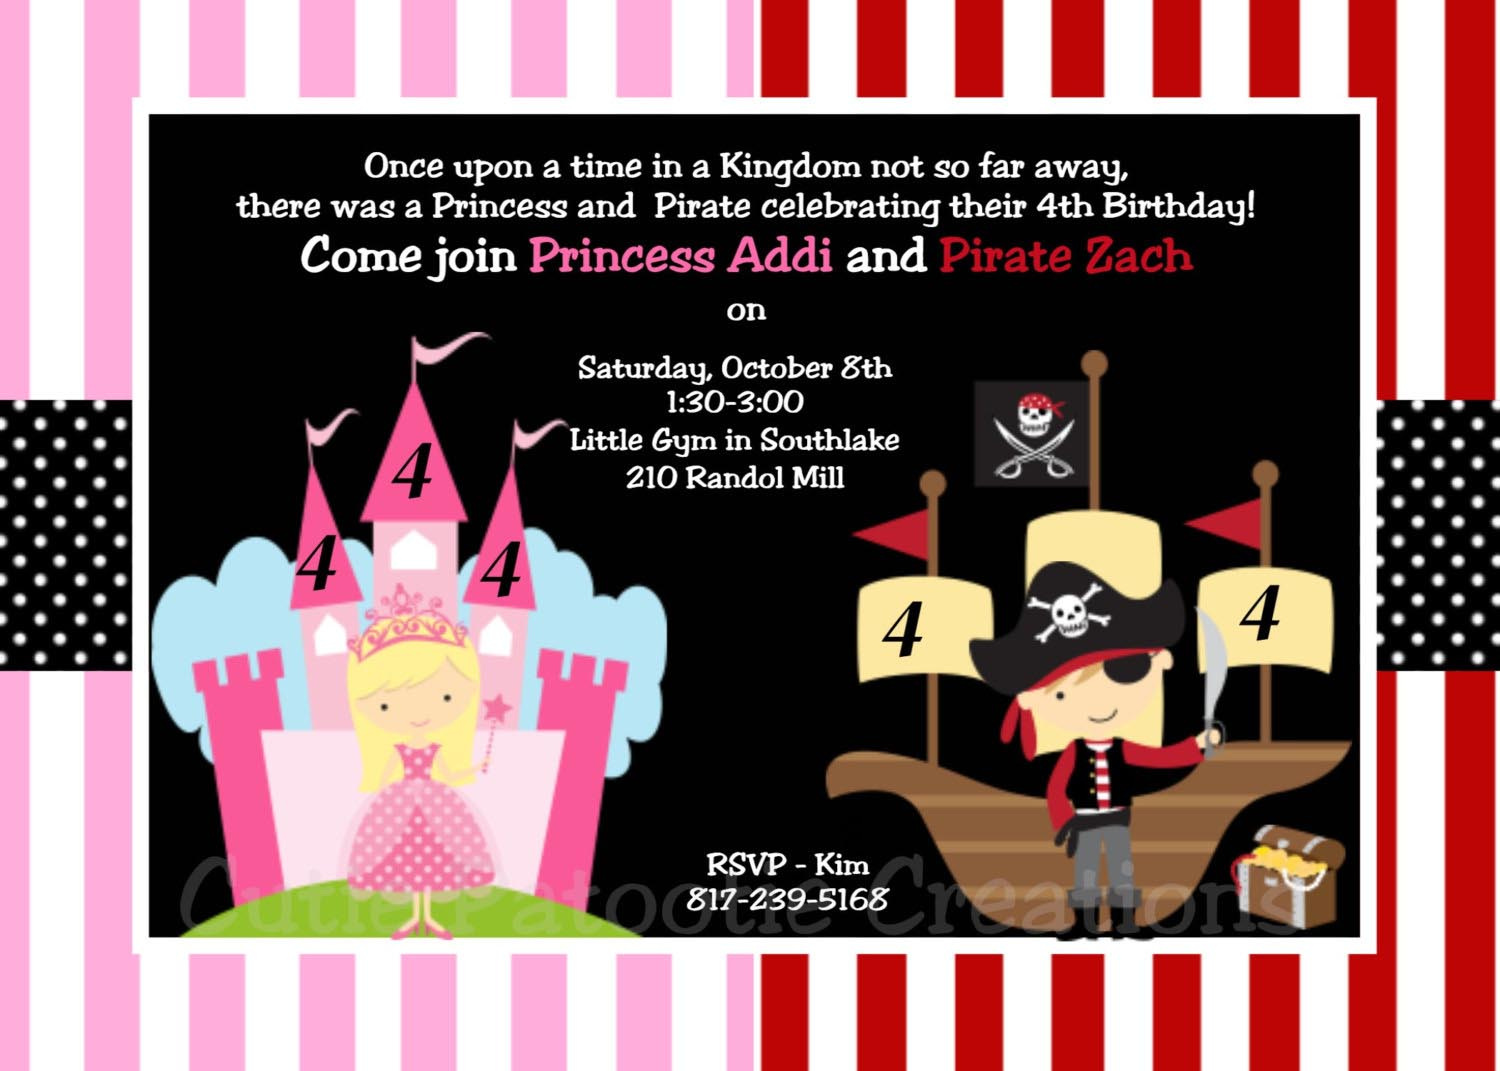 Pirate And Princess Party Invitations Template | Home Party Ideas